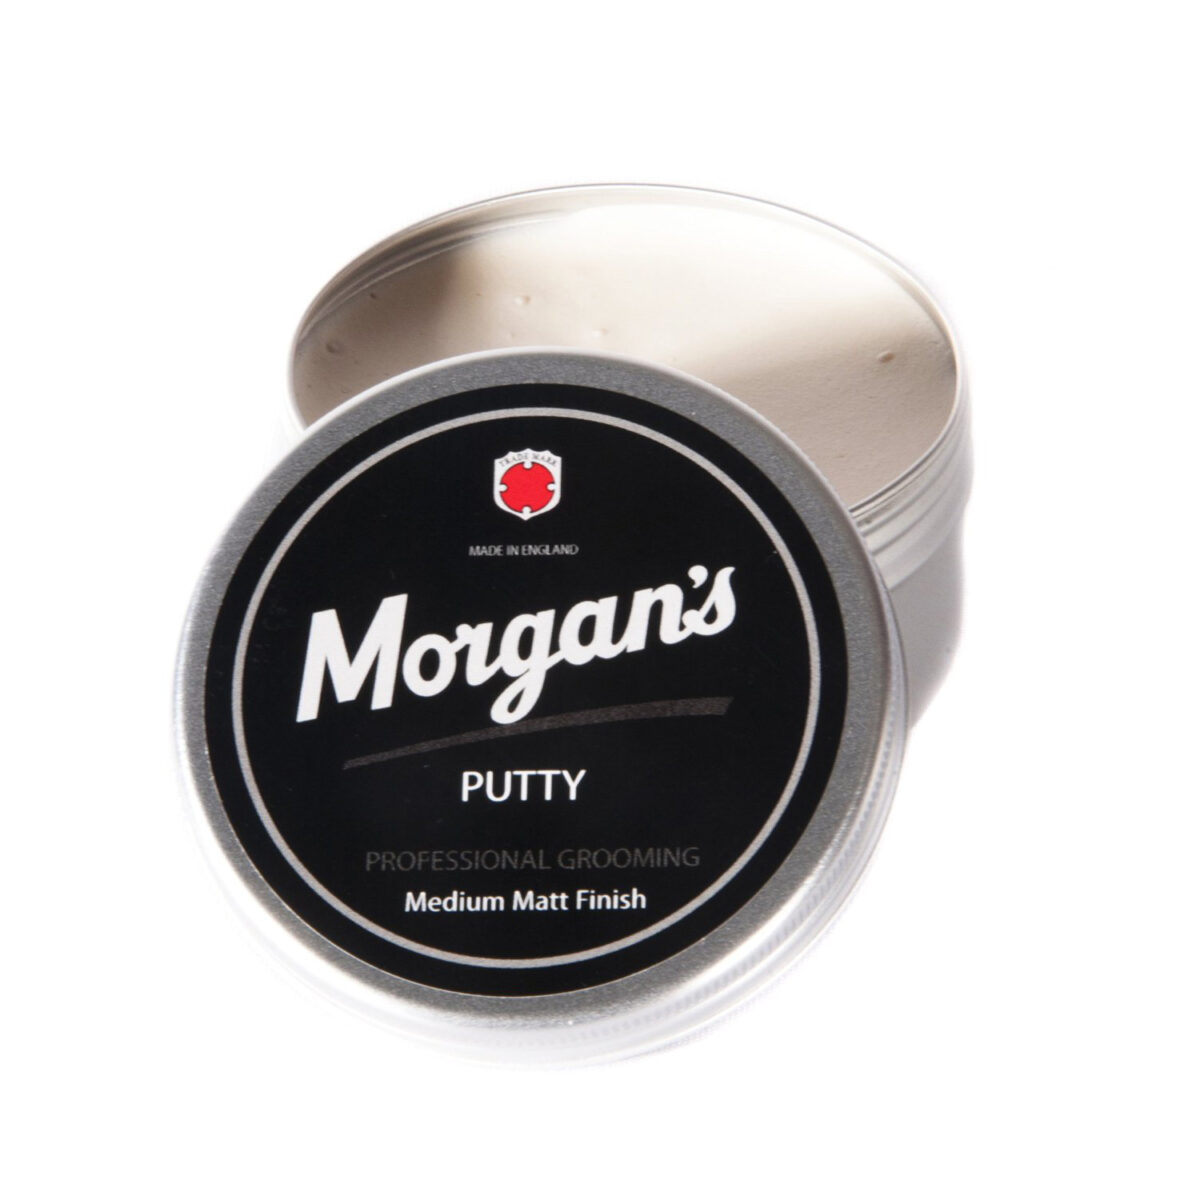 Morgans styling putty